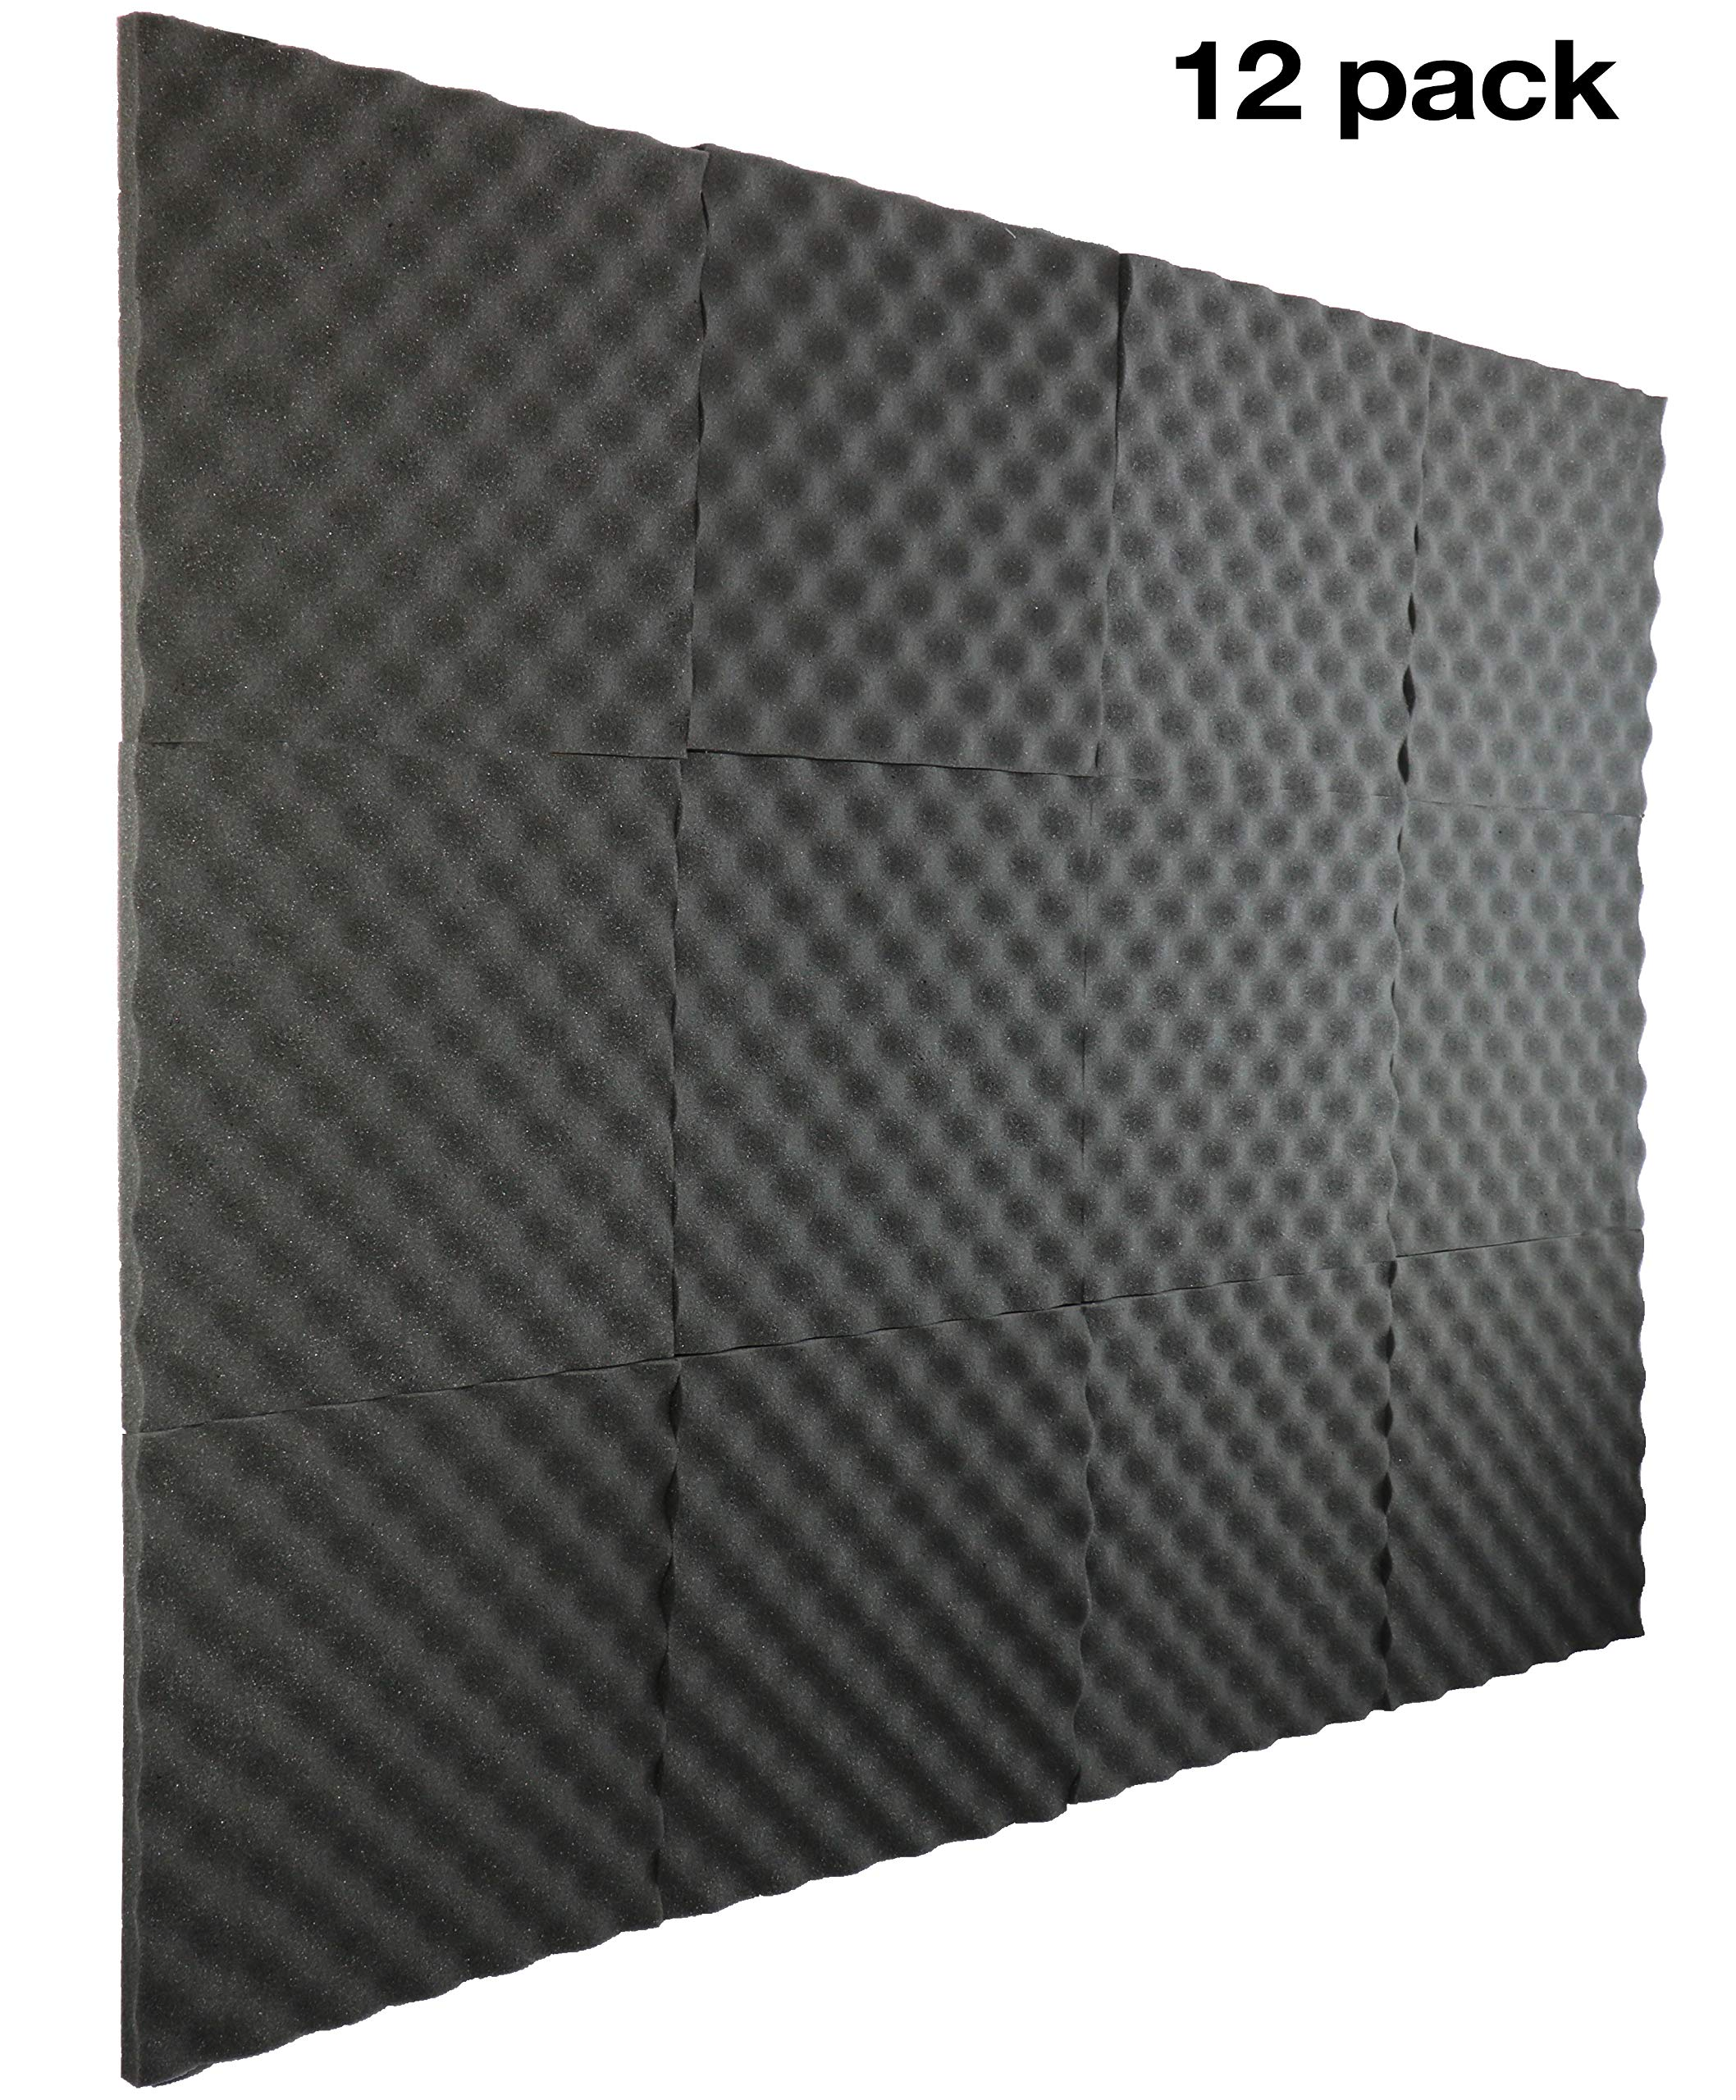 12 Pack- Acoustic Panels Studio Foam Egg Crate 1'' X 12'' X 12'' by NEW LEVEL